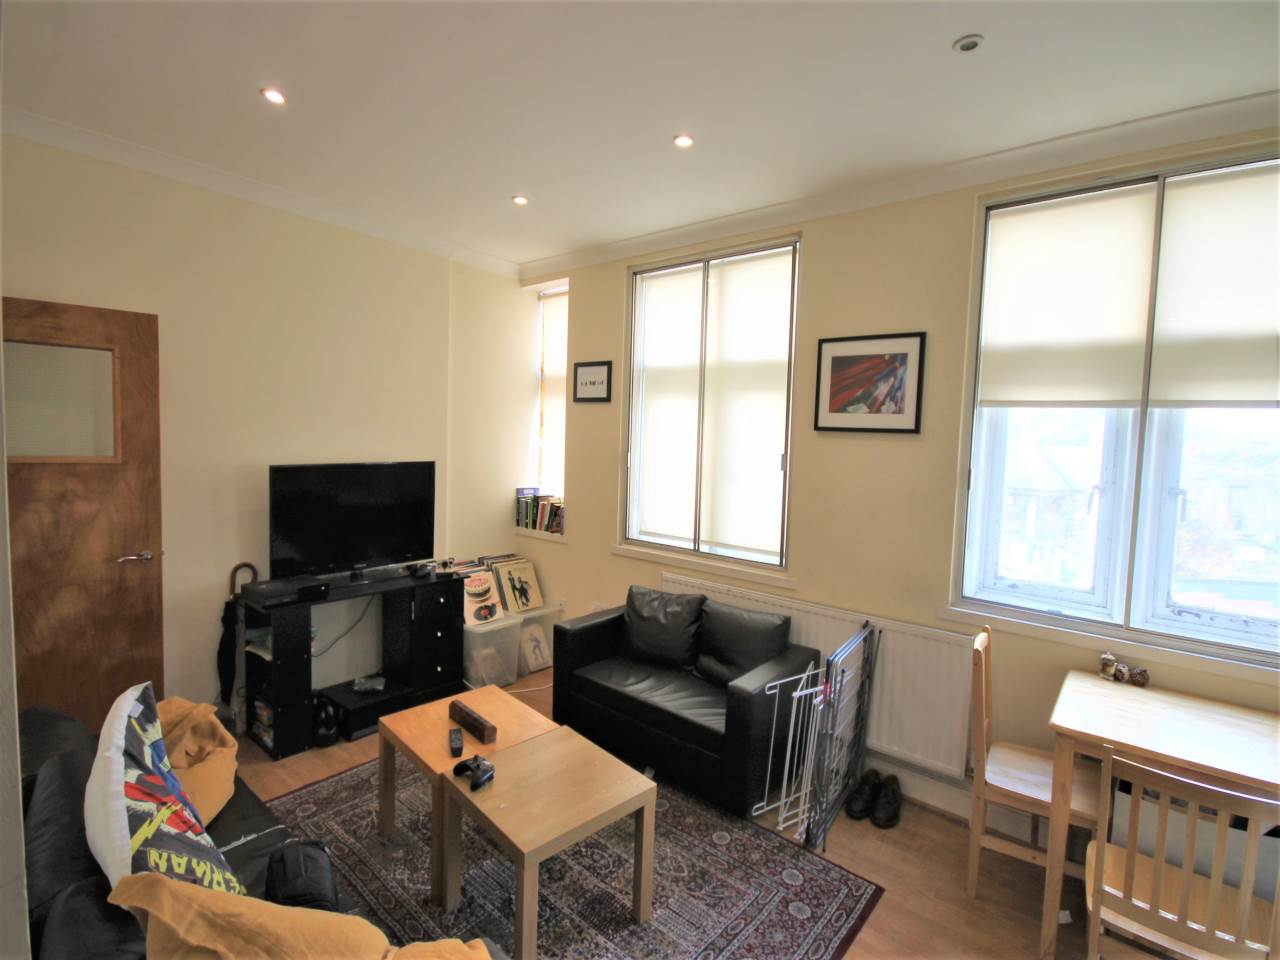 2 bed flat to rent in Priory Avenue, Walthamstow, E17